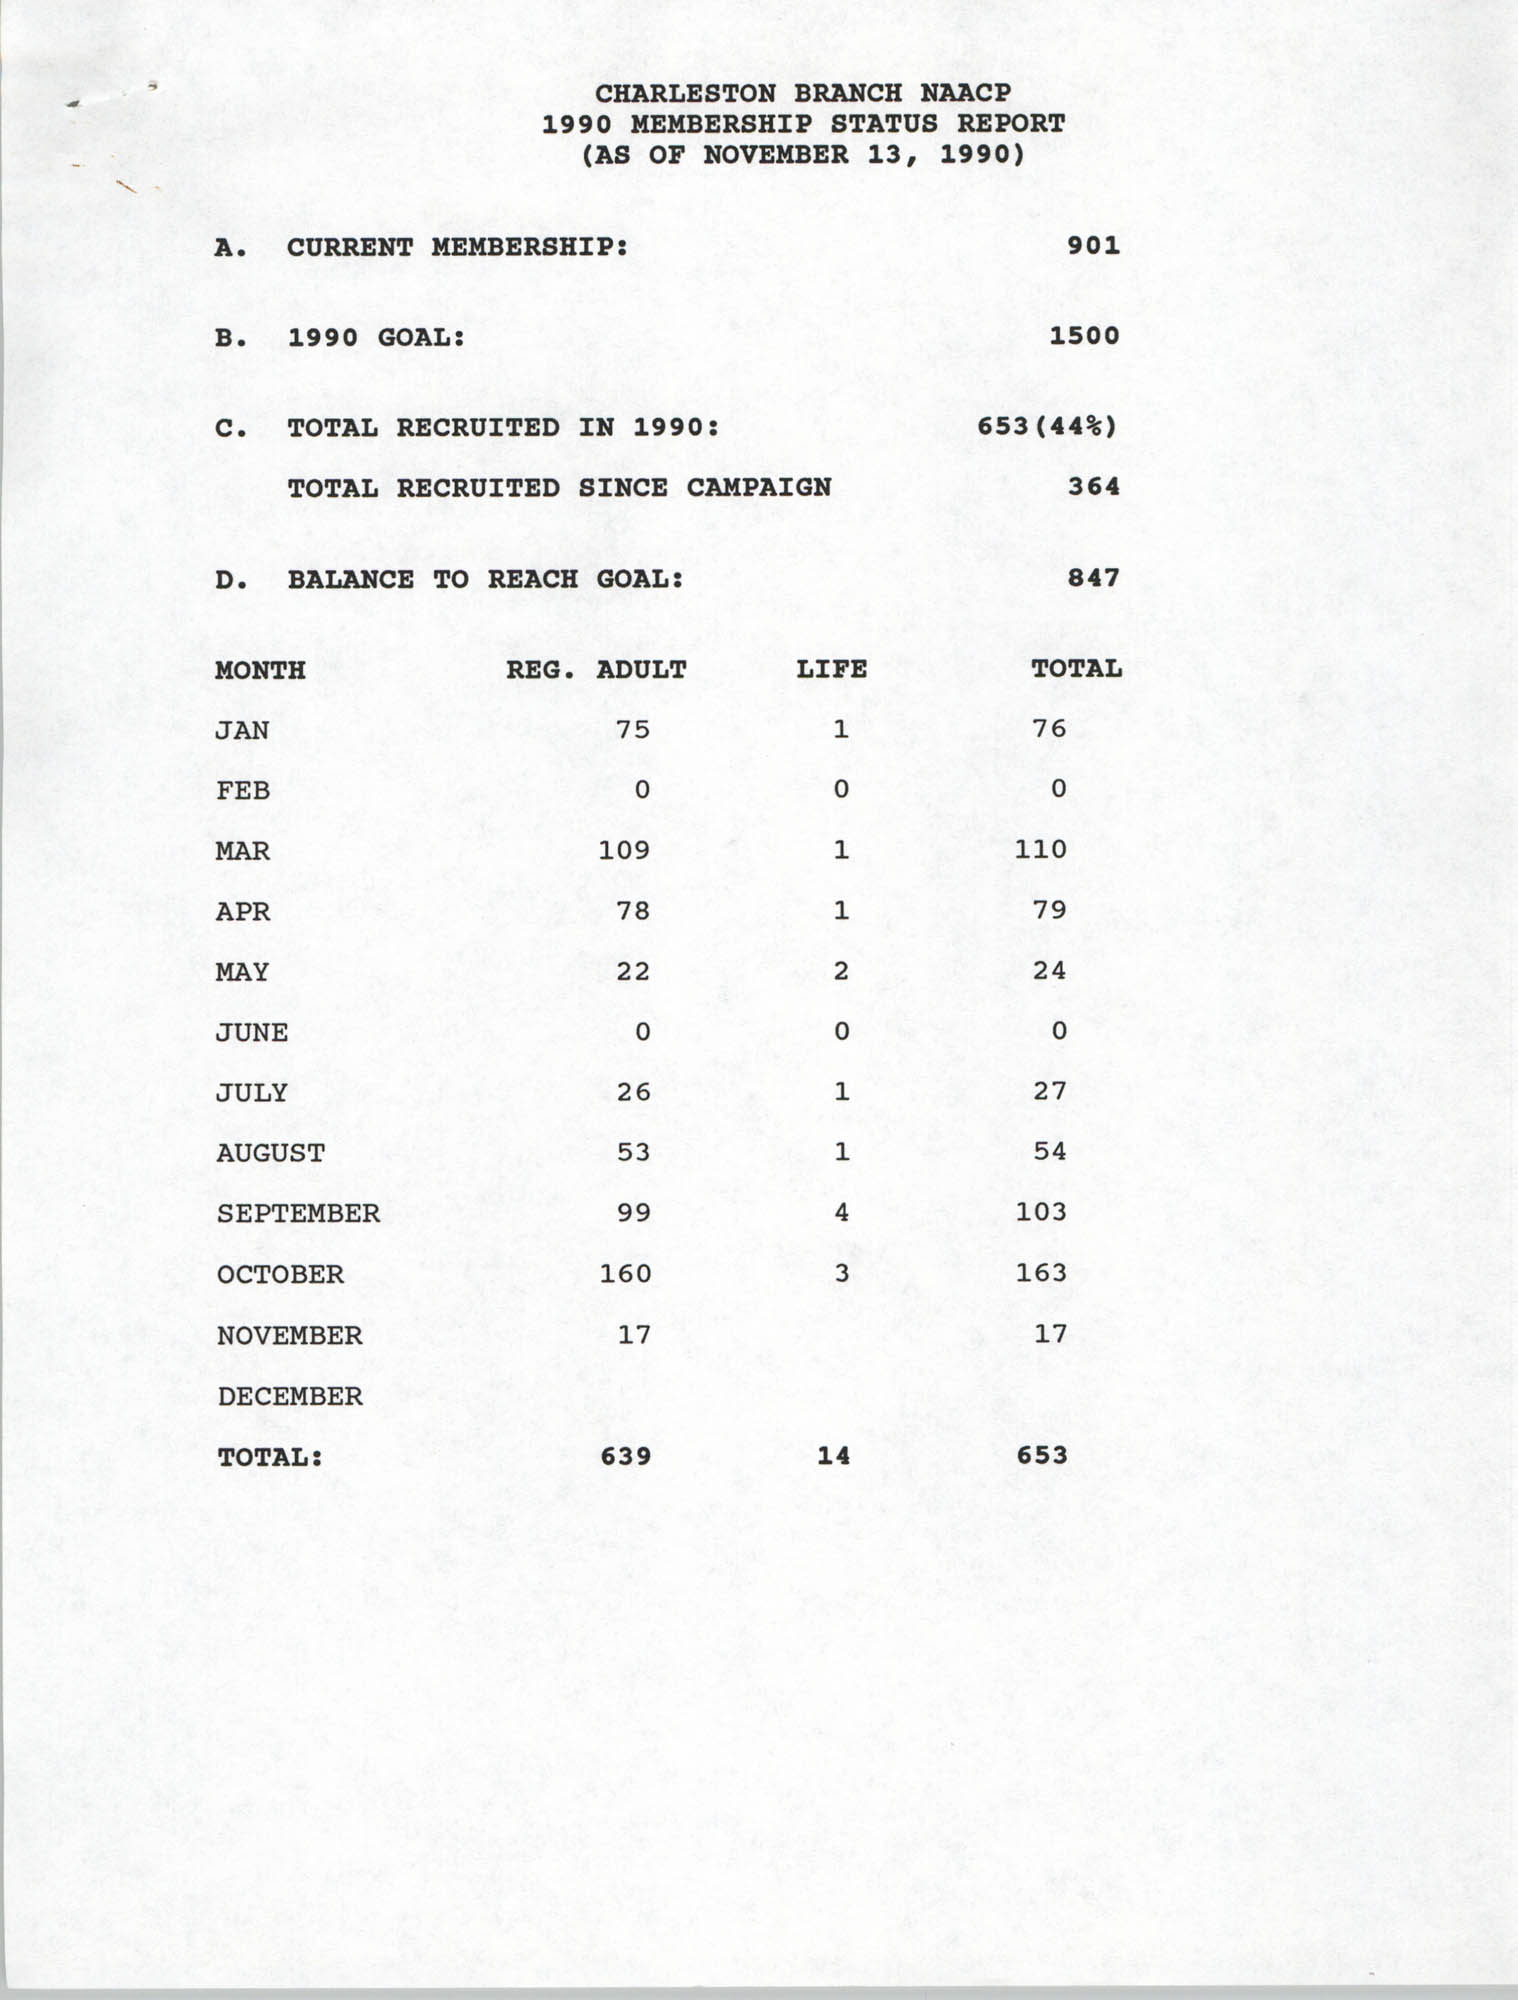 Membership Status Report, National Association for the Advancement of Colored People, November 13, 1990